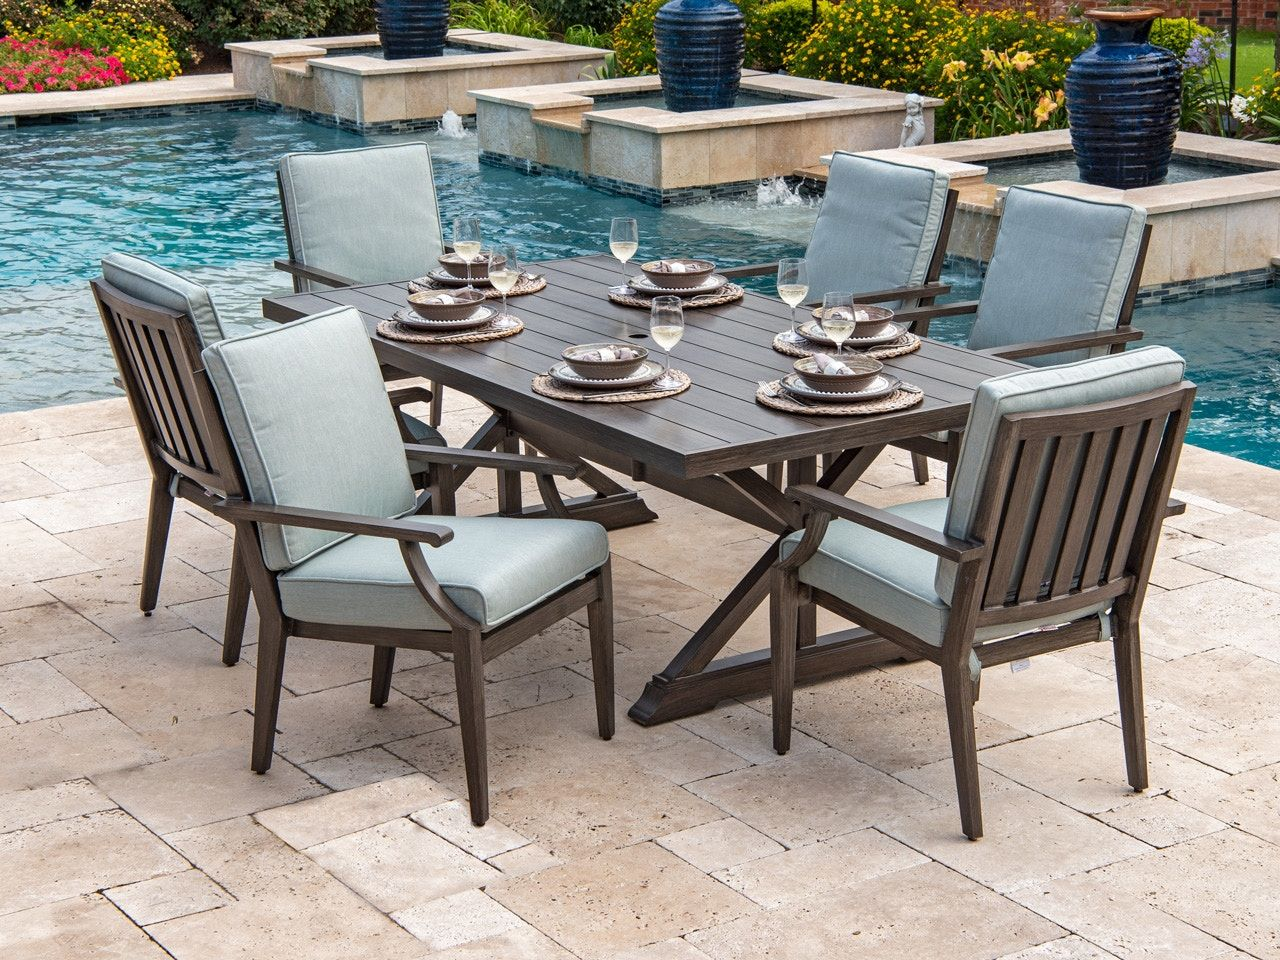 Outdoor Patio Monaco Weathered Teak Aluminum 7 Pc Cast Mist Cushion Dining Set With 84 X 44 In Dining Table 7084775 In 2020 Weathered Teak Rectangular Dining Set Outdoor Furniture Sets